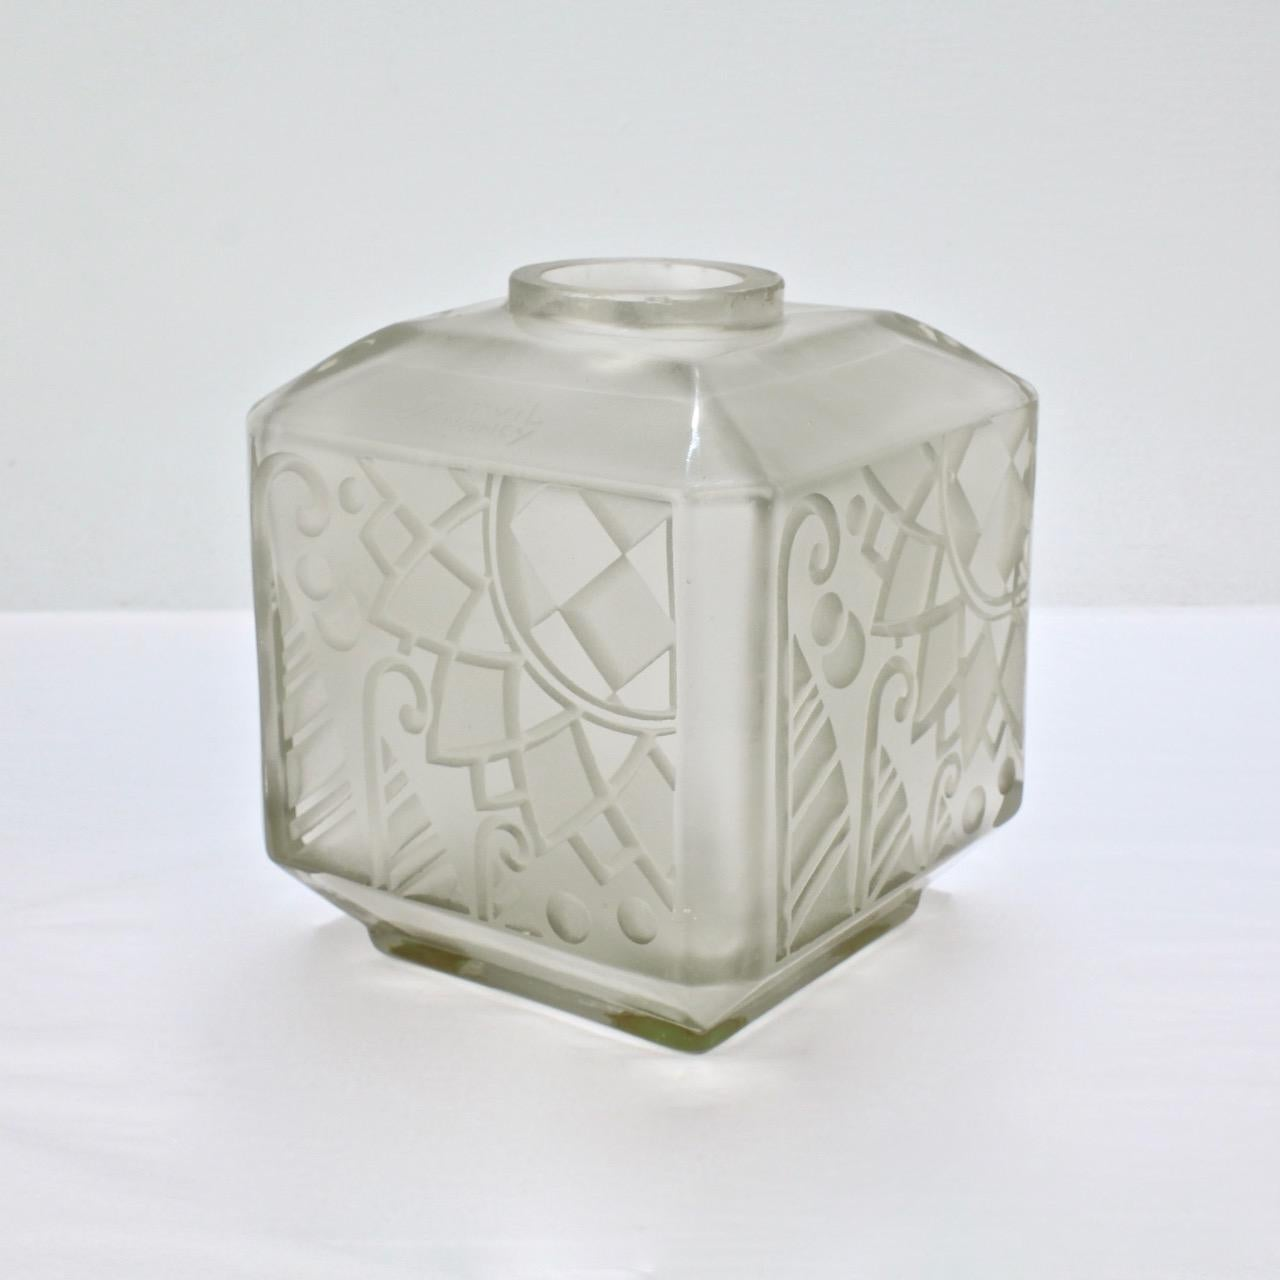 Art Deco Style & Light French Art Deco Glass Vase By Andre Delatte